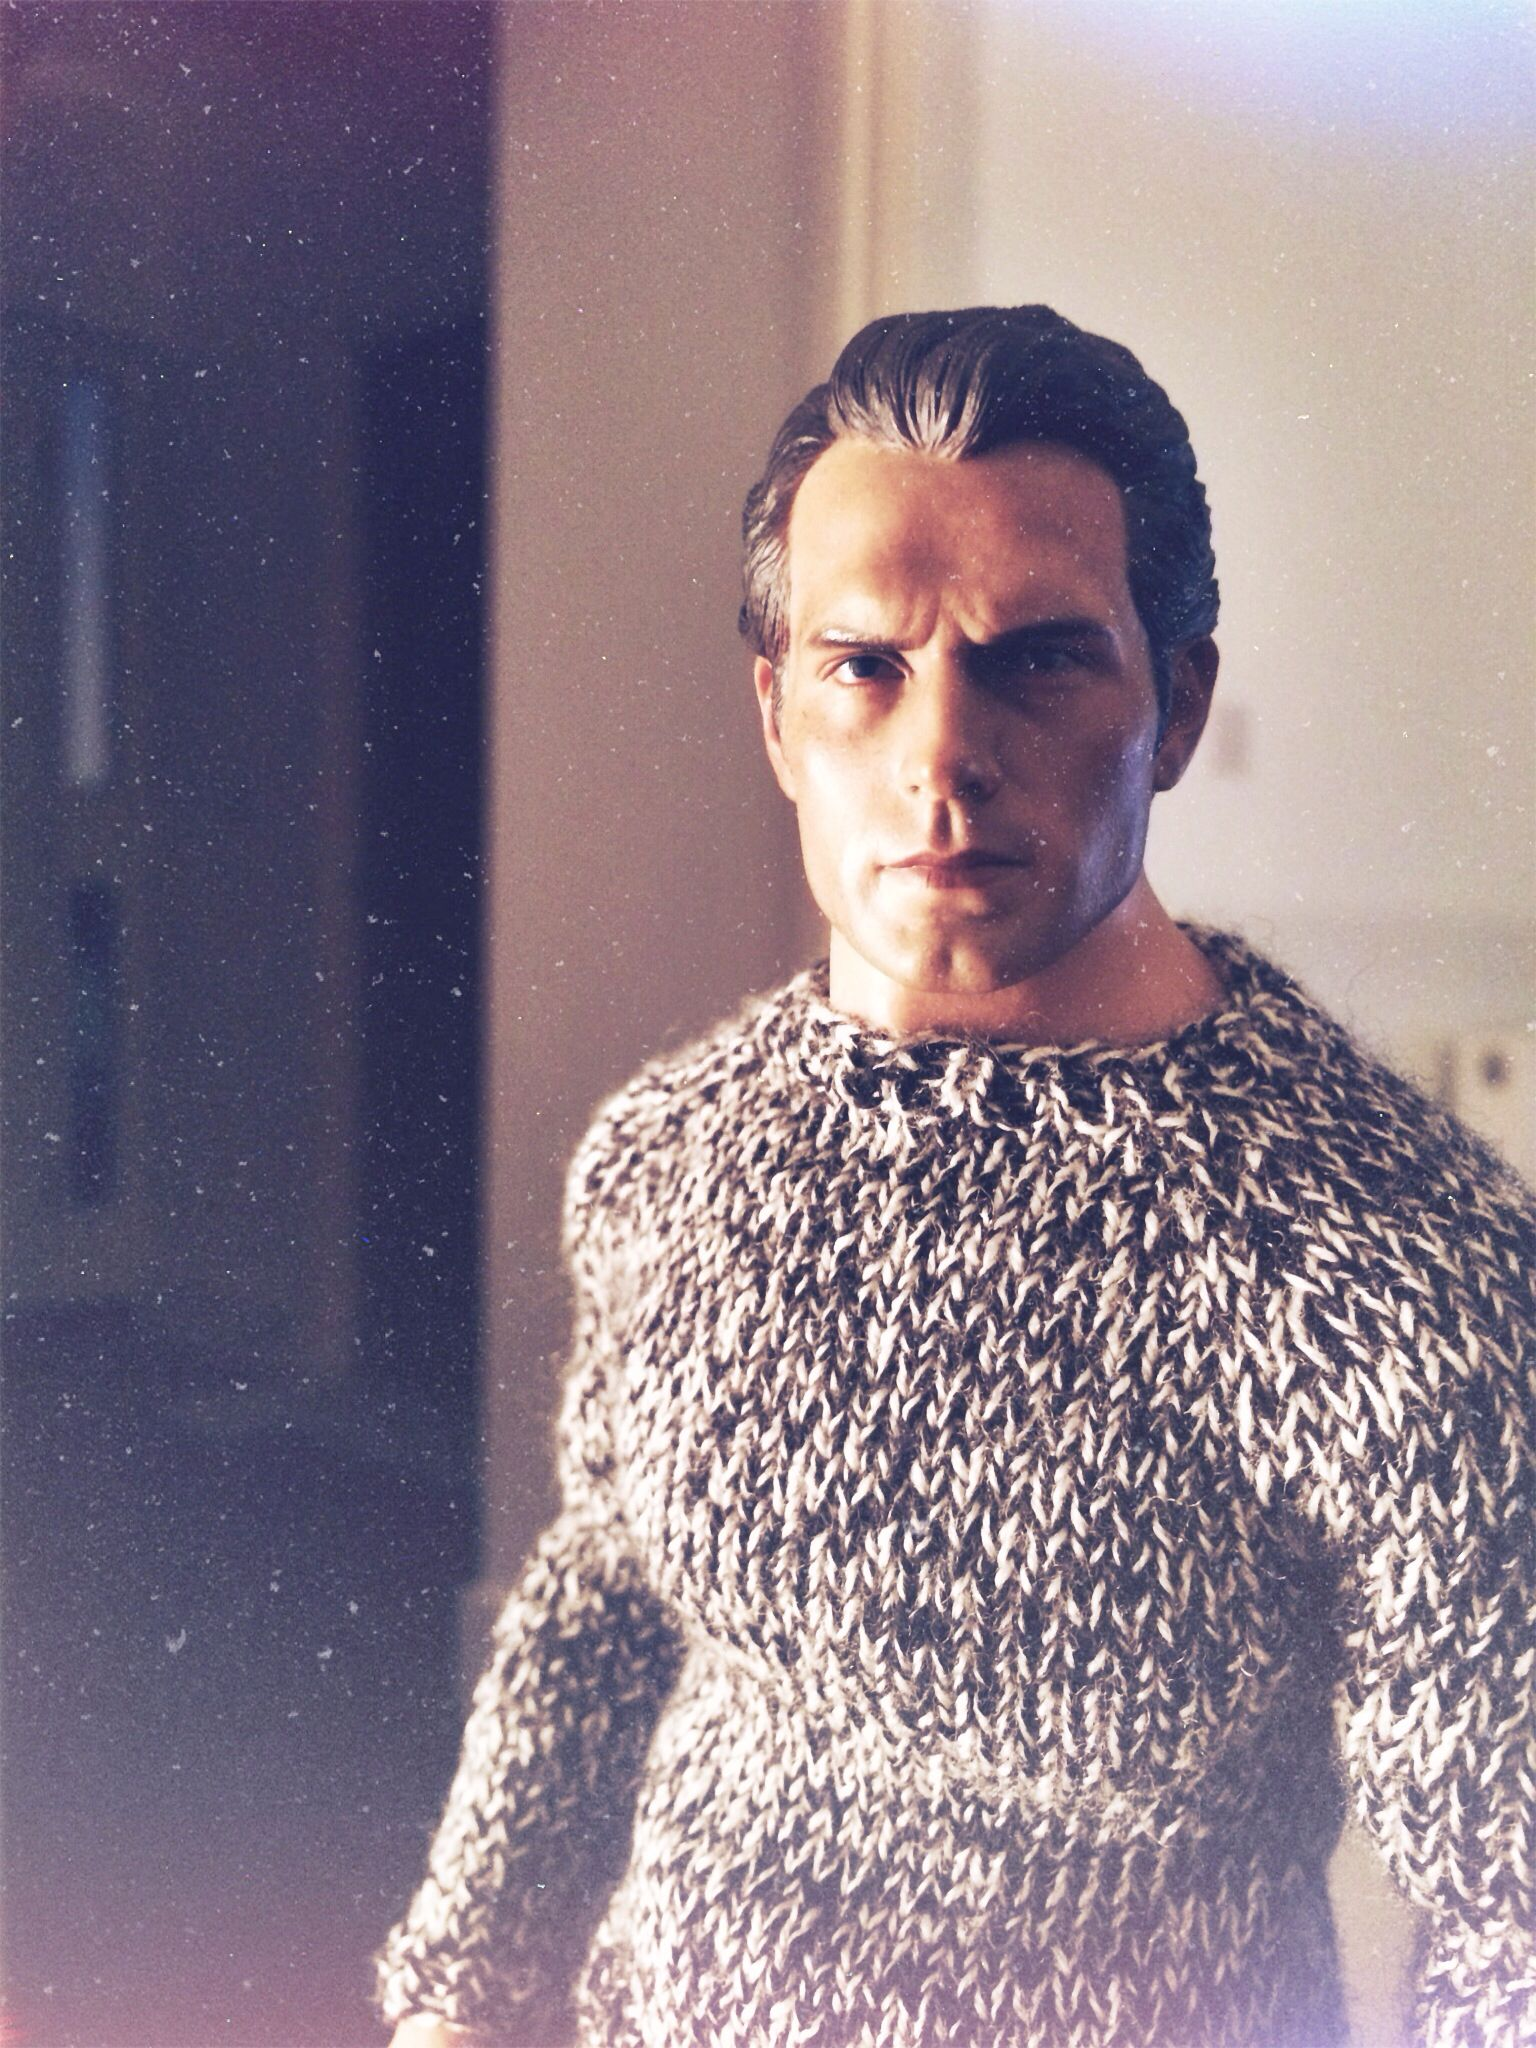 Dom.  This is a Hot Toys True Type TTM20 body with a Henry Cavill head and hand-knitted sweater by @Hegemony77 clothes for dolls and 1/6 figures